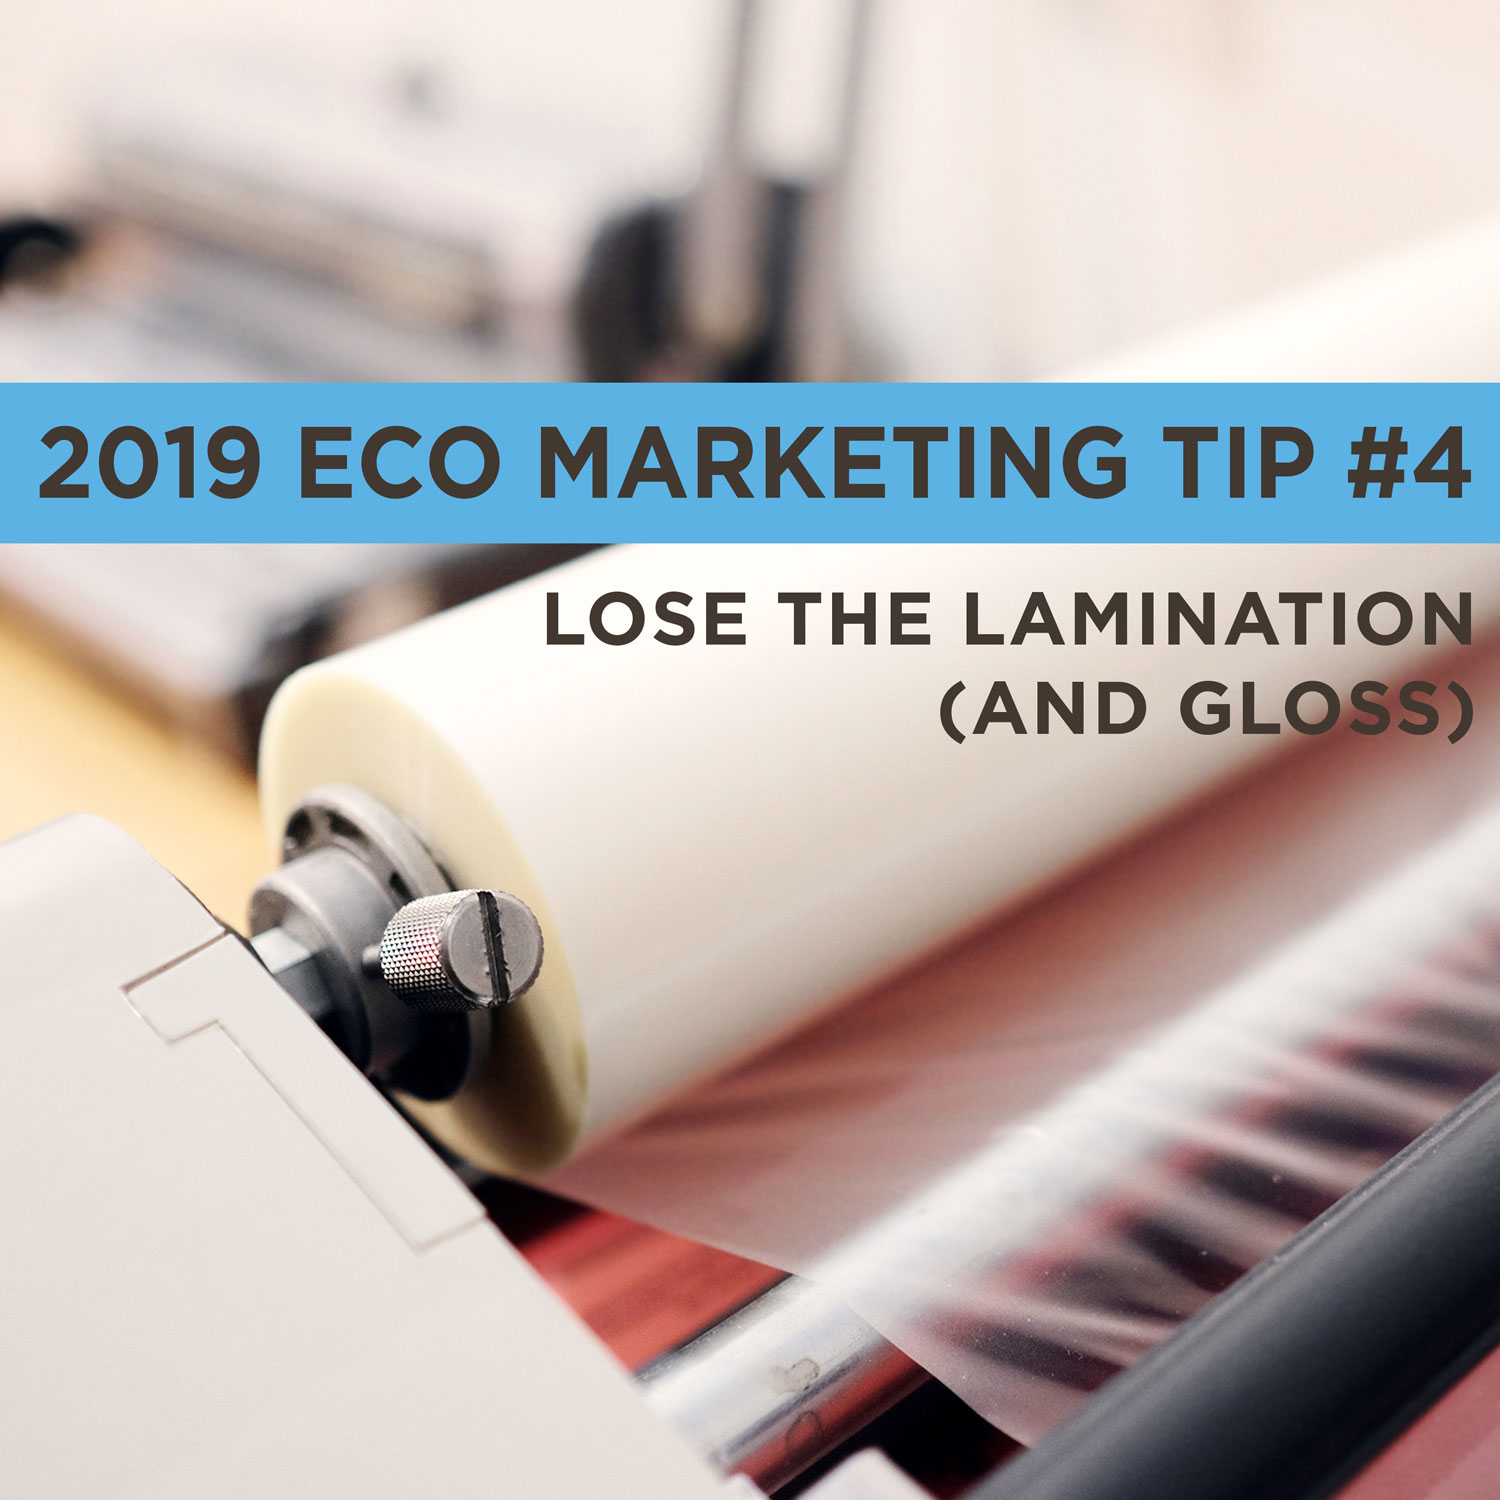 Eco Marketing Tip 4 is to lose the lamination on printed items